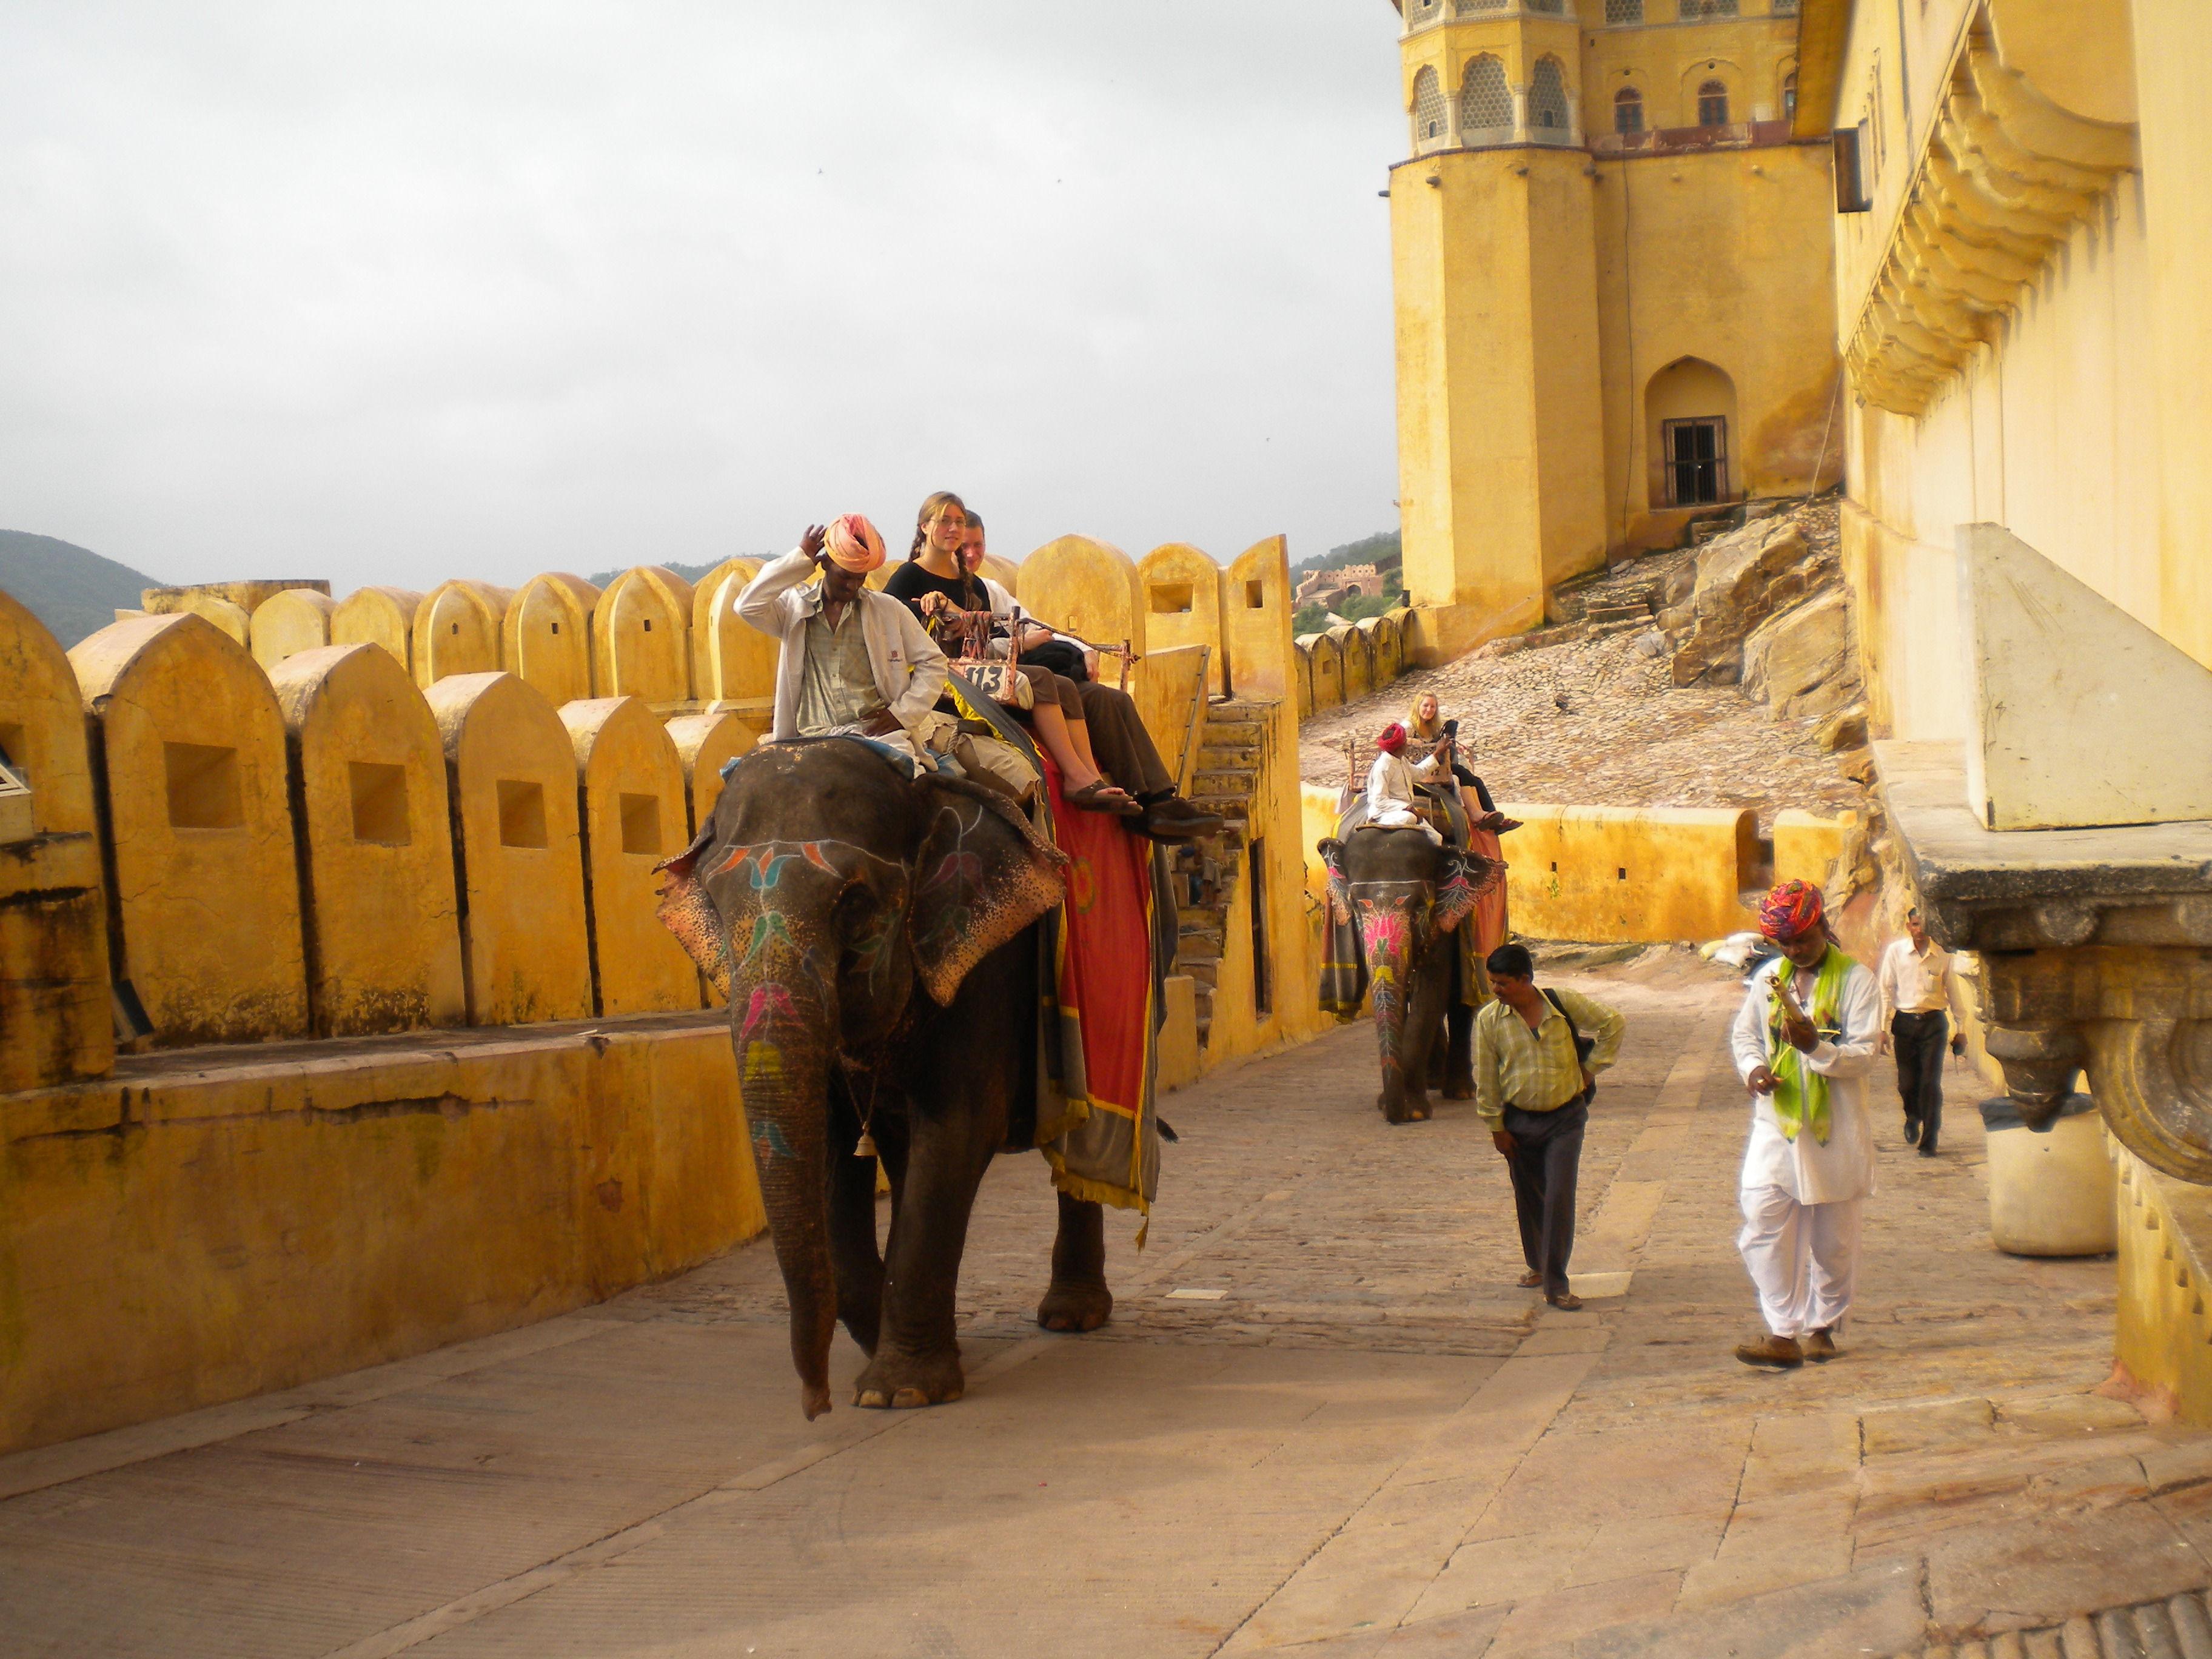 Amber_Fort_-_Tourists_to_fort_on_elephant_1